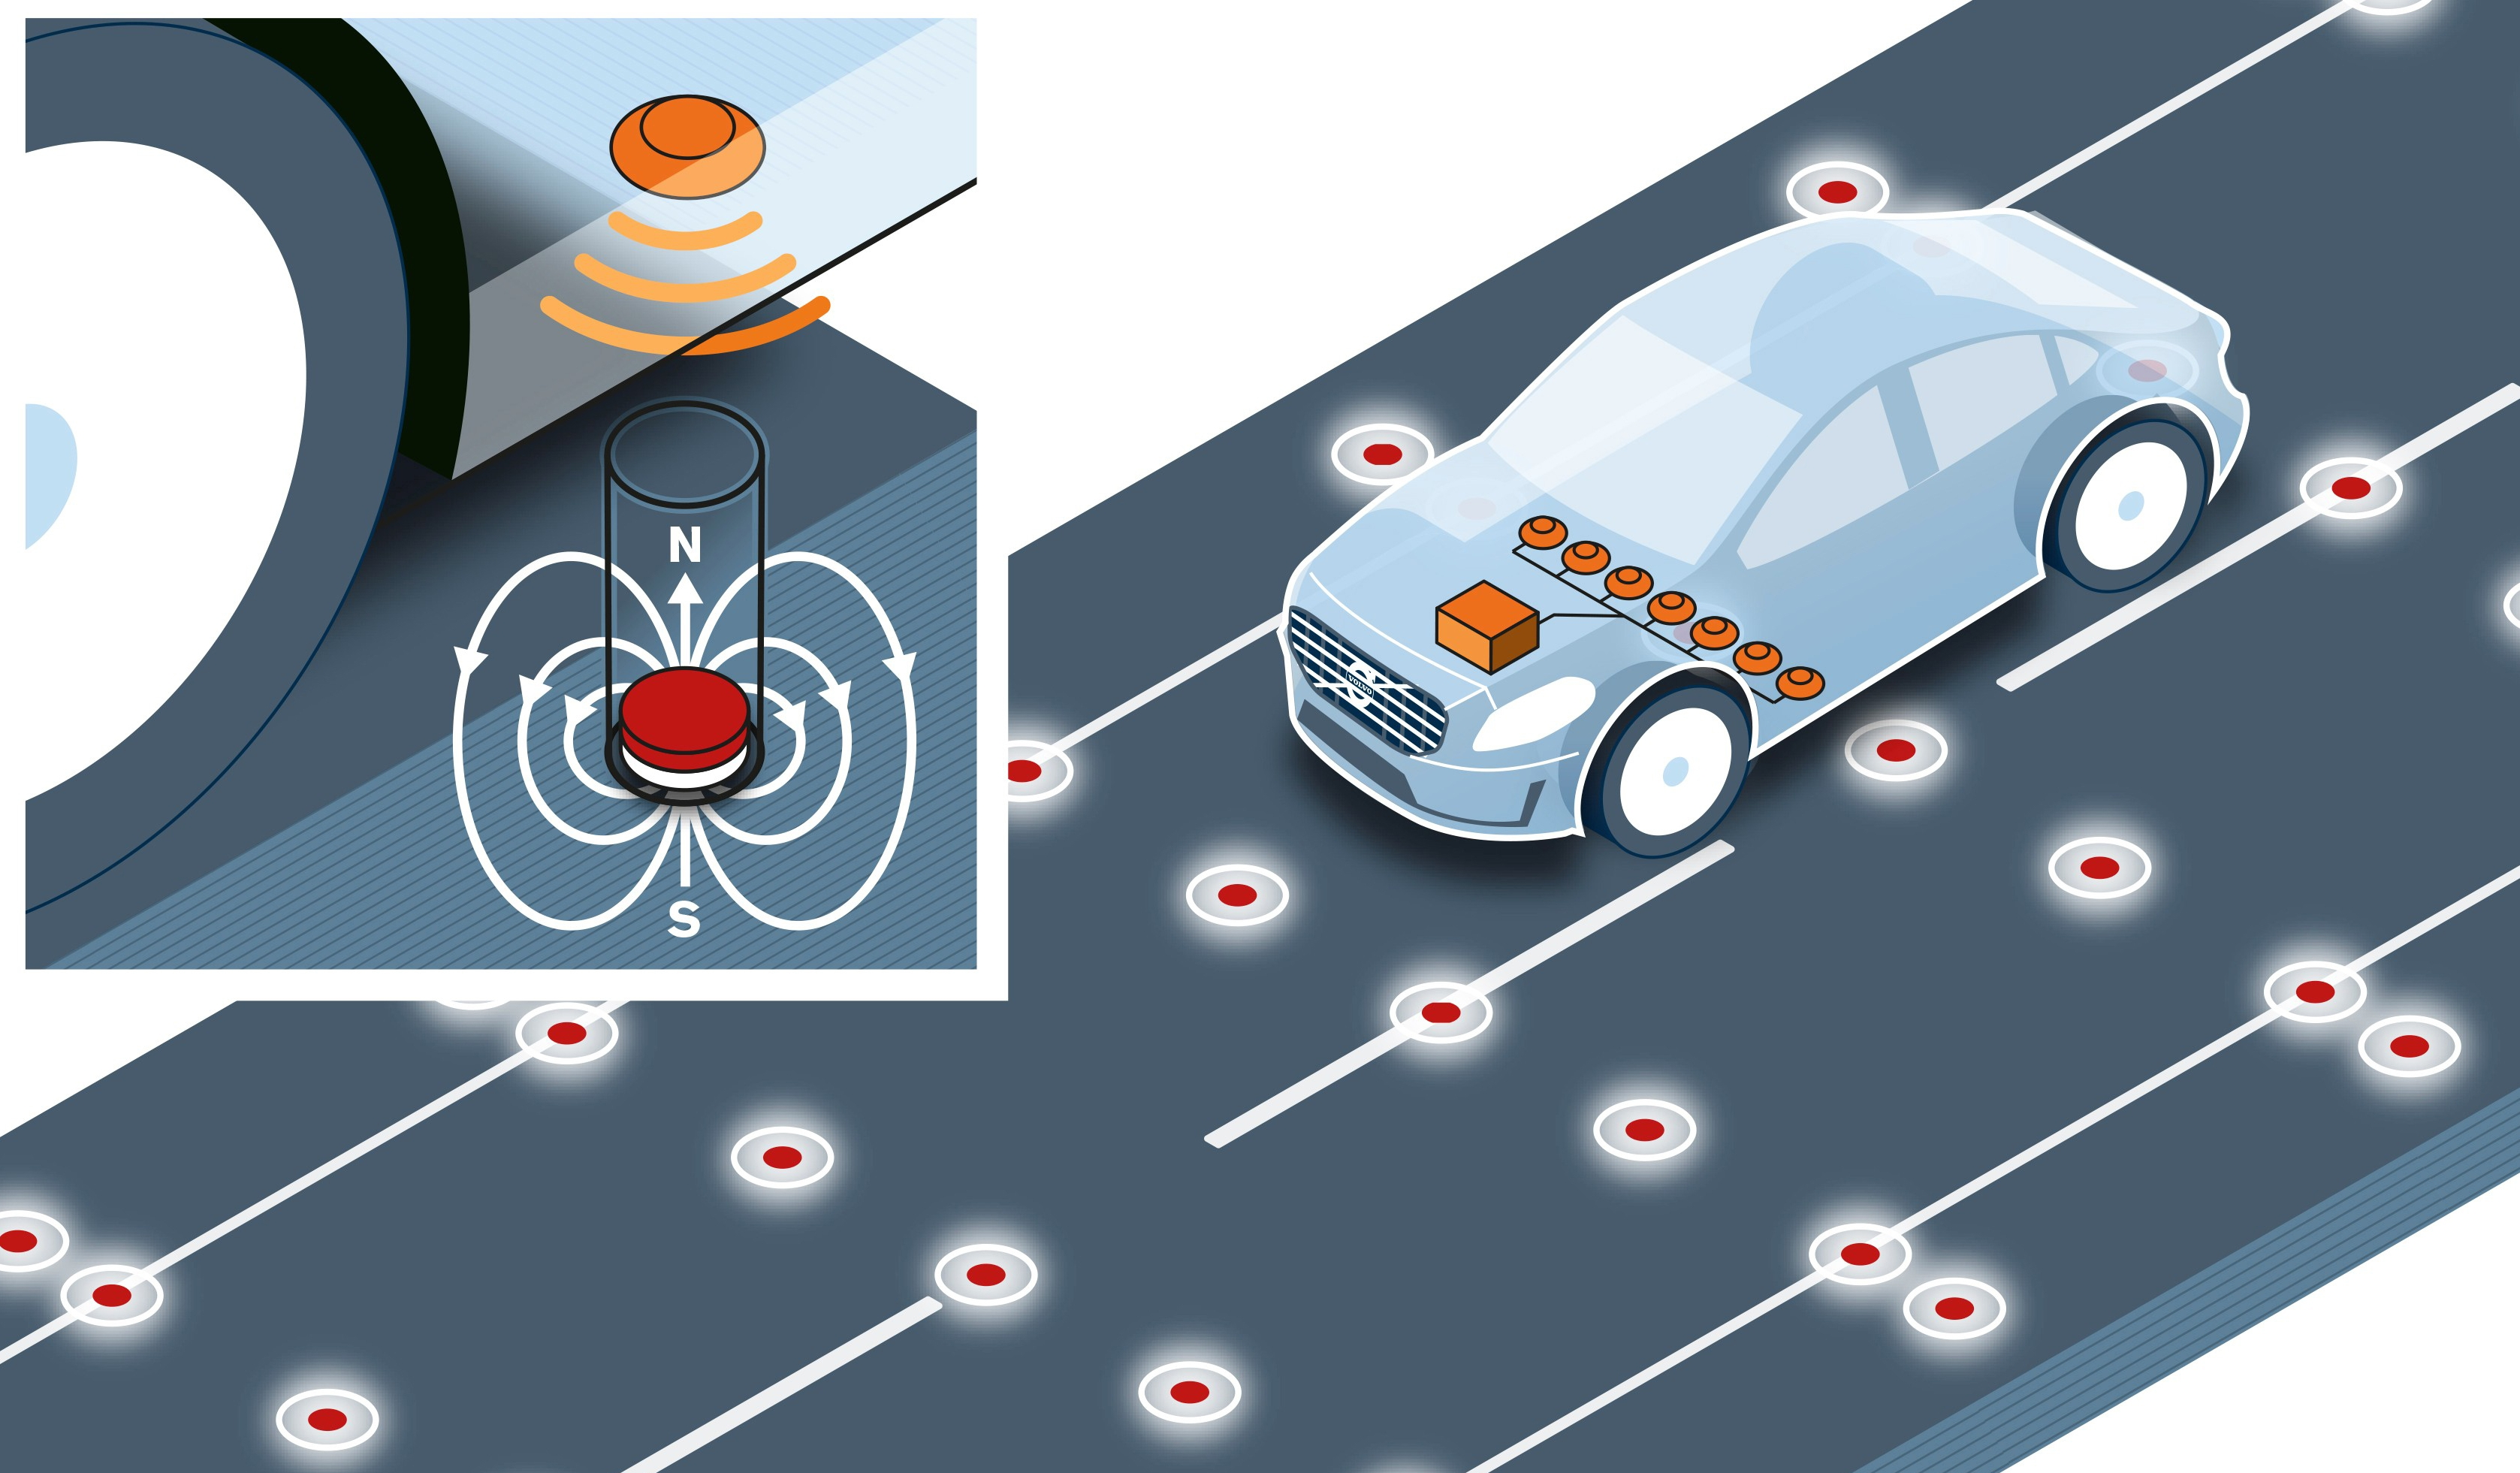 Magnets For Cars >> Volvo evaluates road-integrated magnet system for accurate positioning of self-driving cars Paul ...